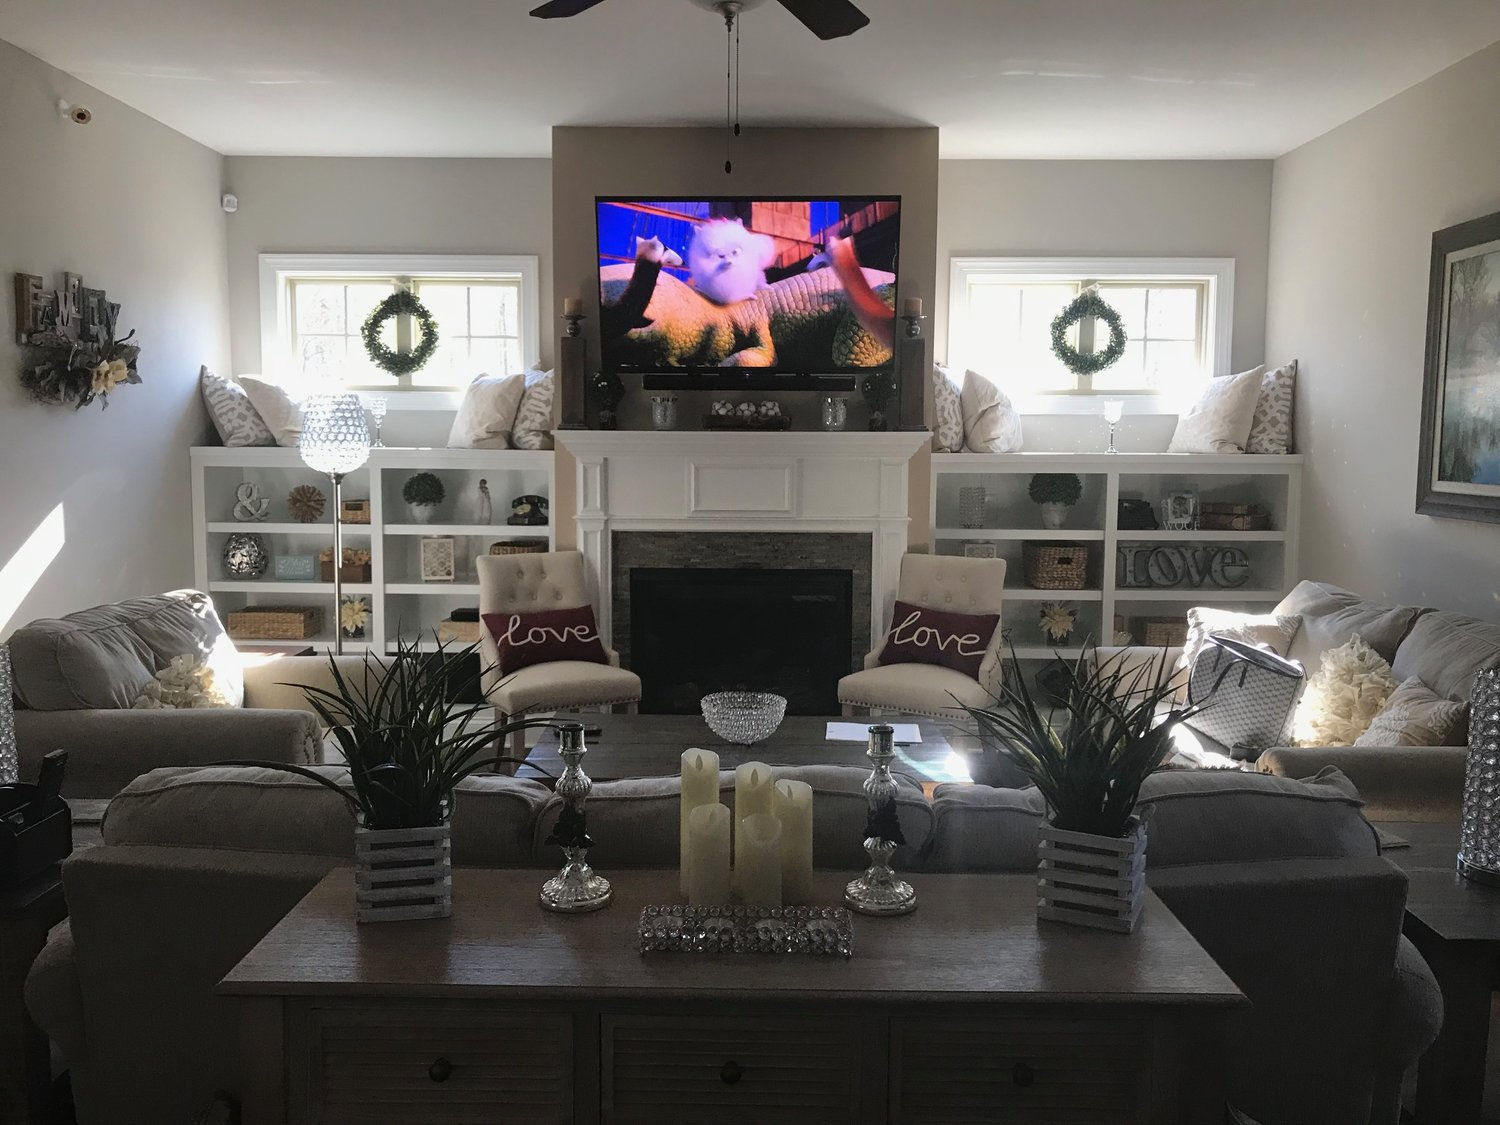 Fireplace Bookcases with Adjustable Shelves and Countertops